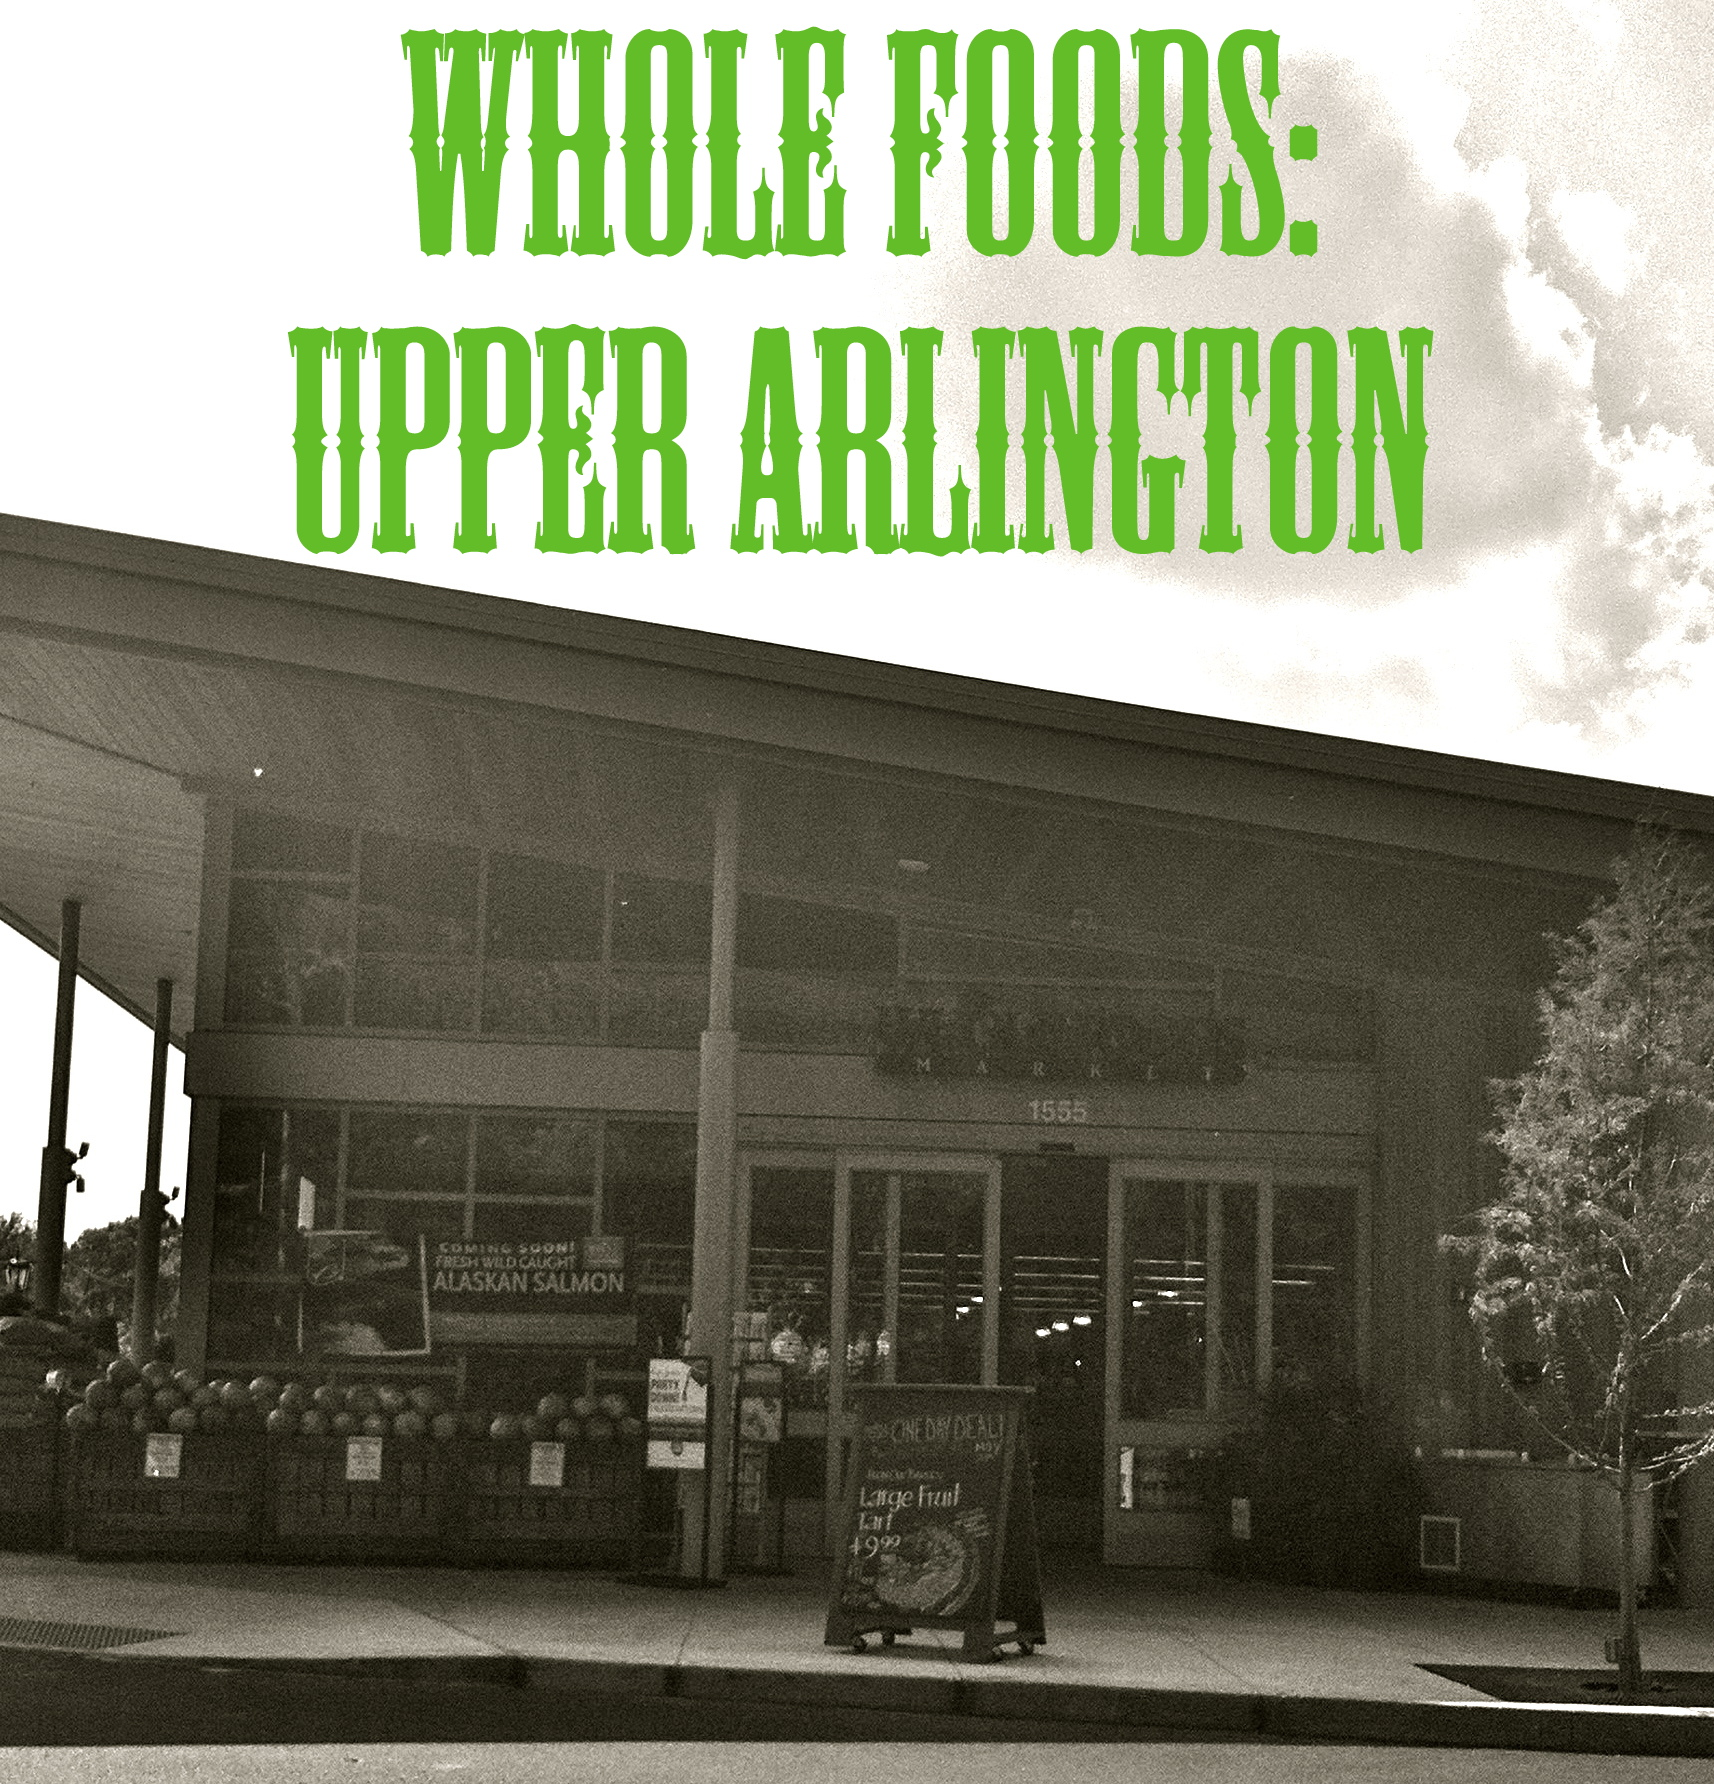 Whole_Foods_Upper_Arlington_Columbus_Ohio